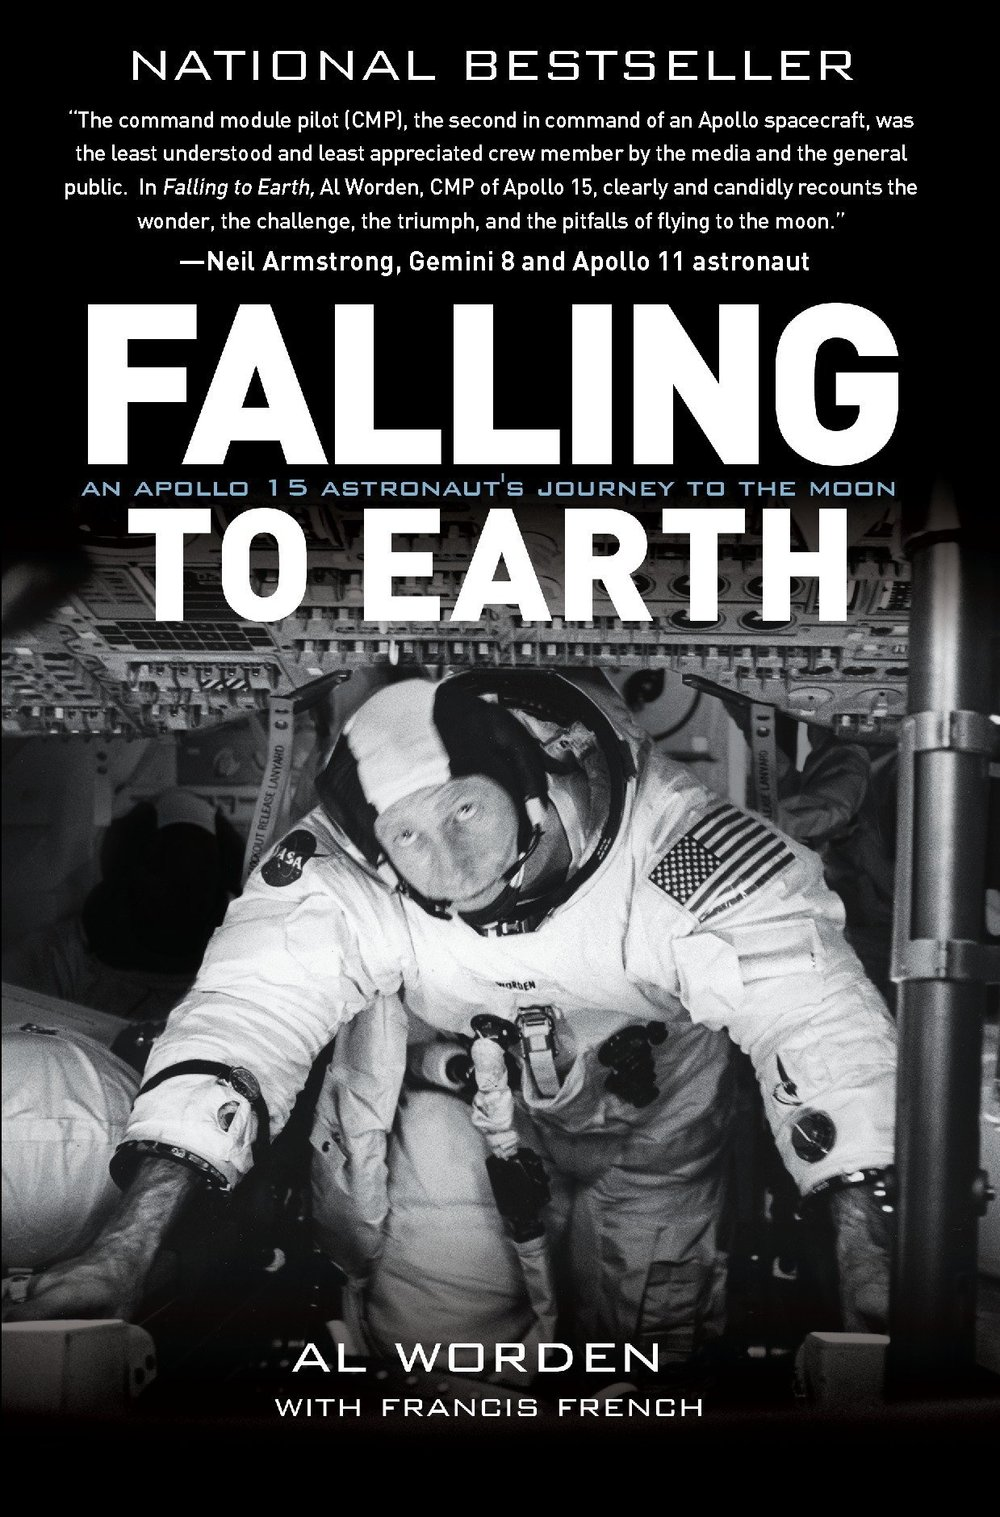 Falling to Earth - An Apollo 15 Astronaut's Journey to the Moon, with Al Worden, 2011 | click here for Falling to Earth extras